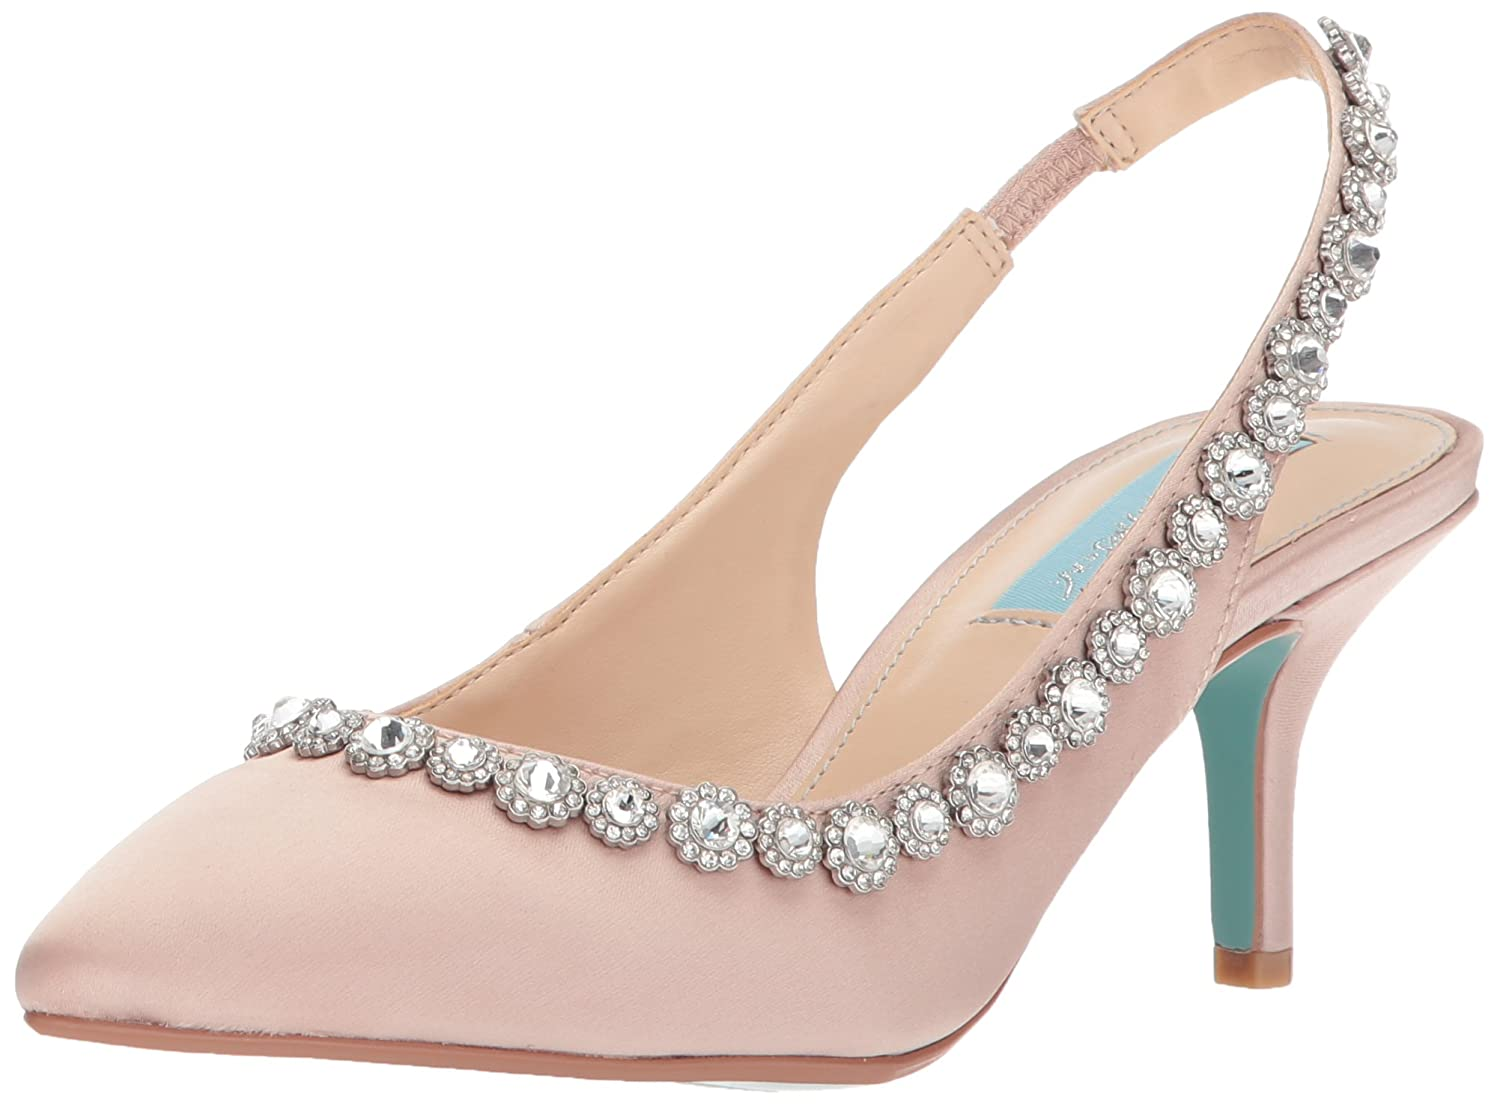 Blue by Betsey Johnson Women's SB-Cici Pump B0757MVNB4 6 B(M) US|Nude Satin